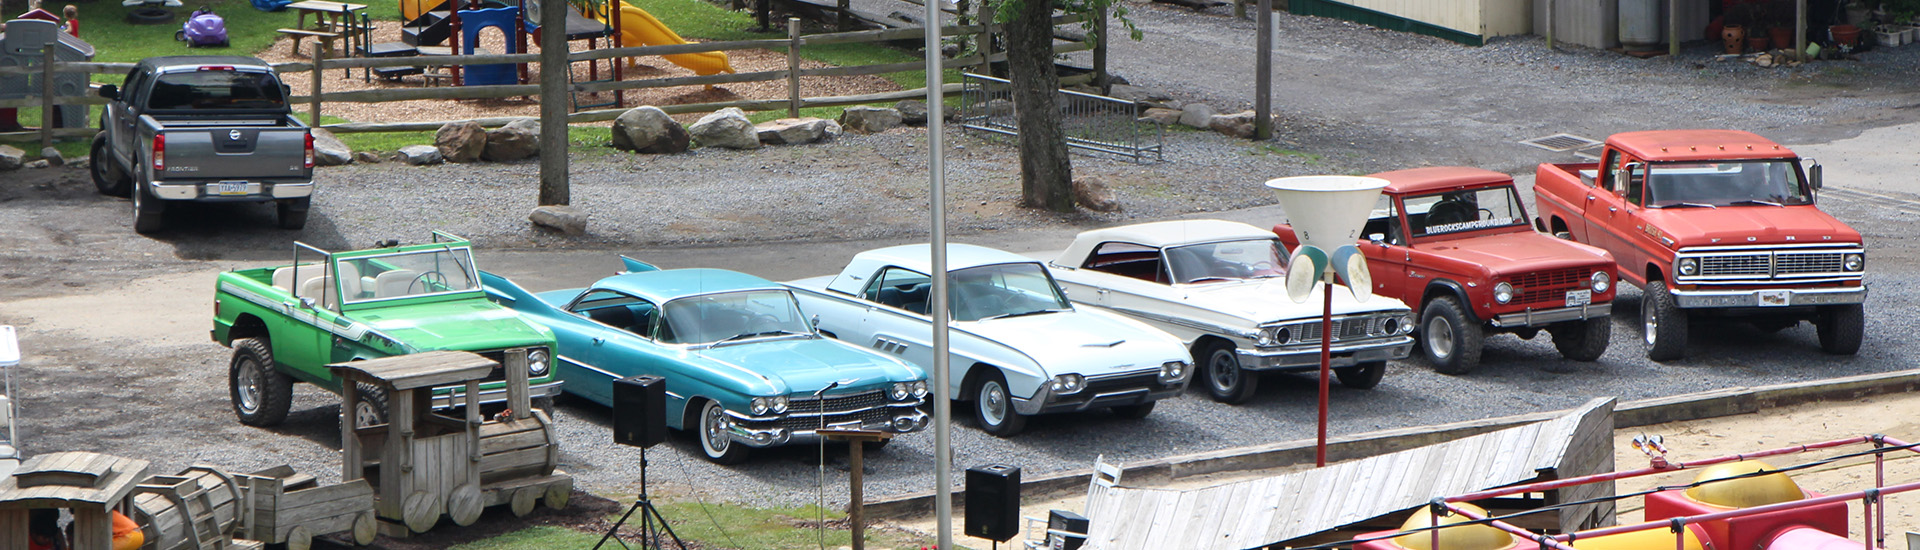 An array of classic cars parked by the playground.